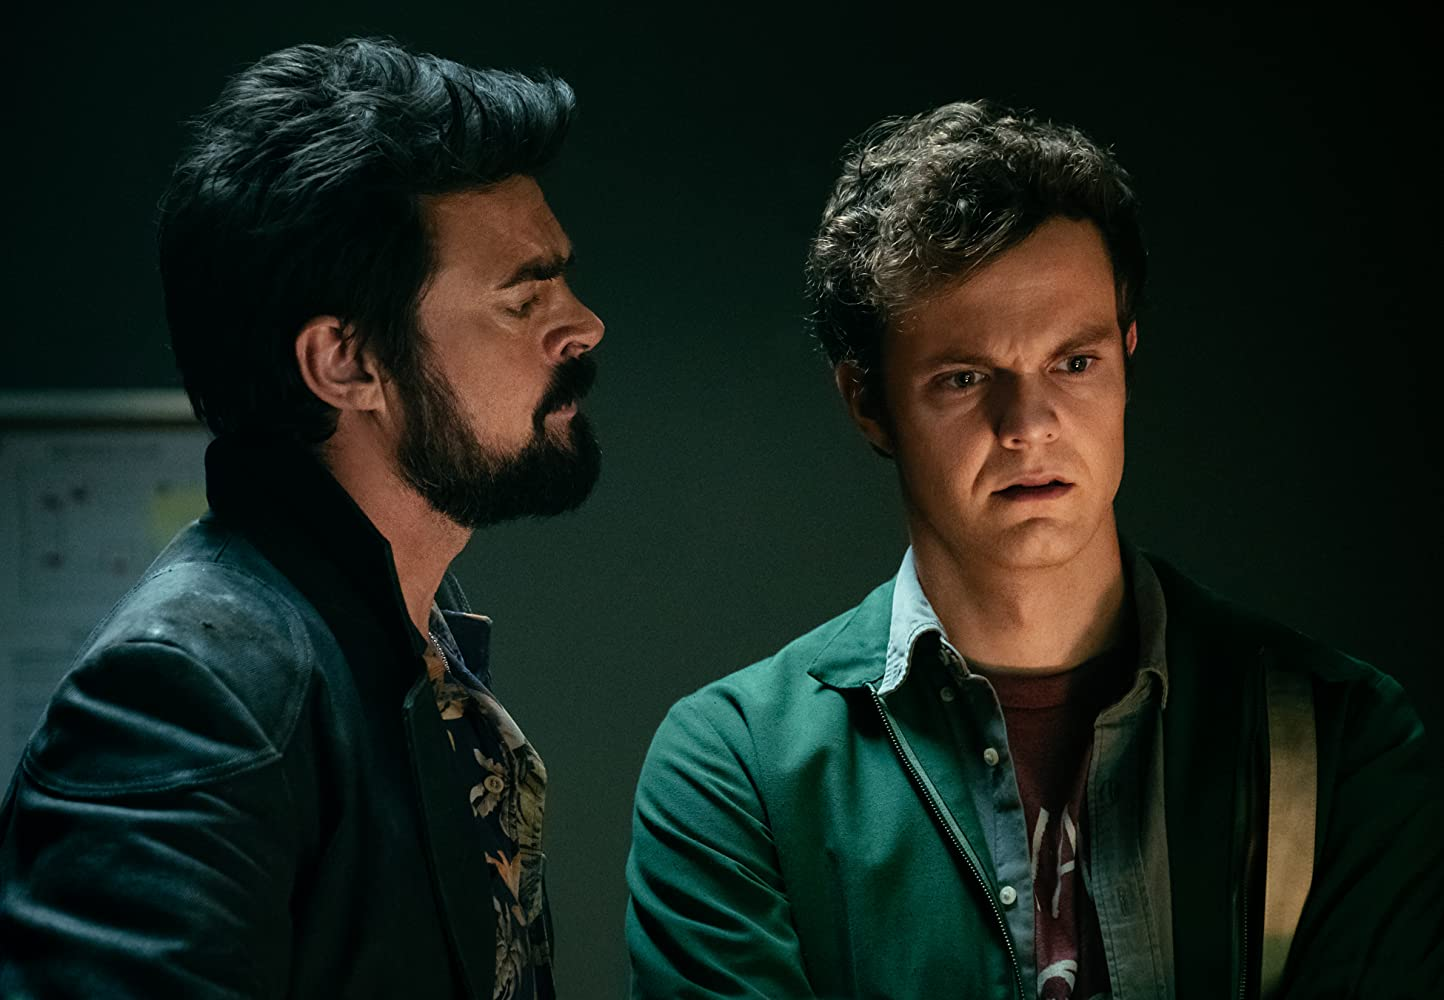 Karl Urban and Jack Quaid in The Boys (2019)